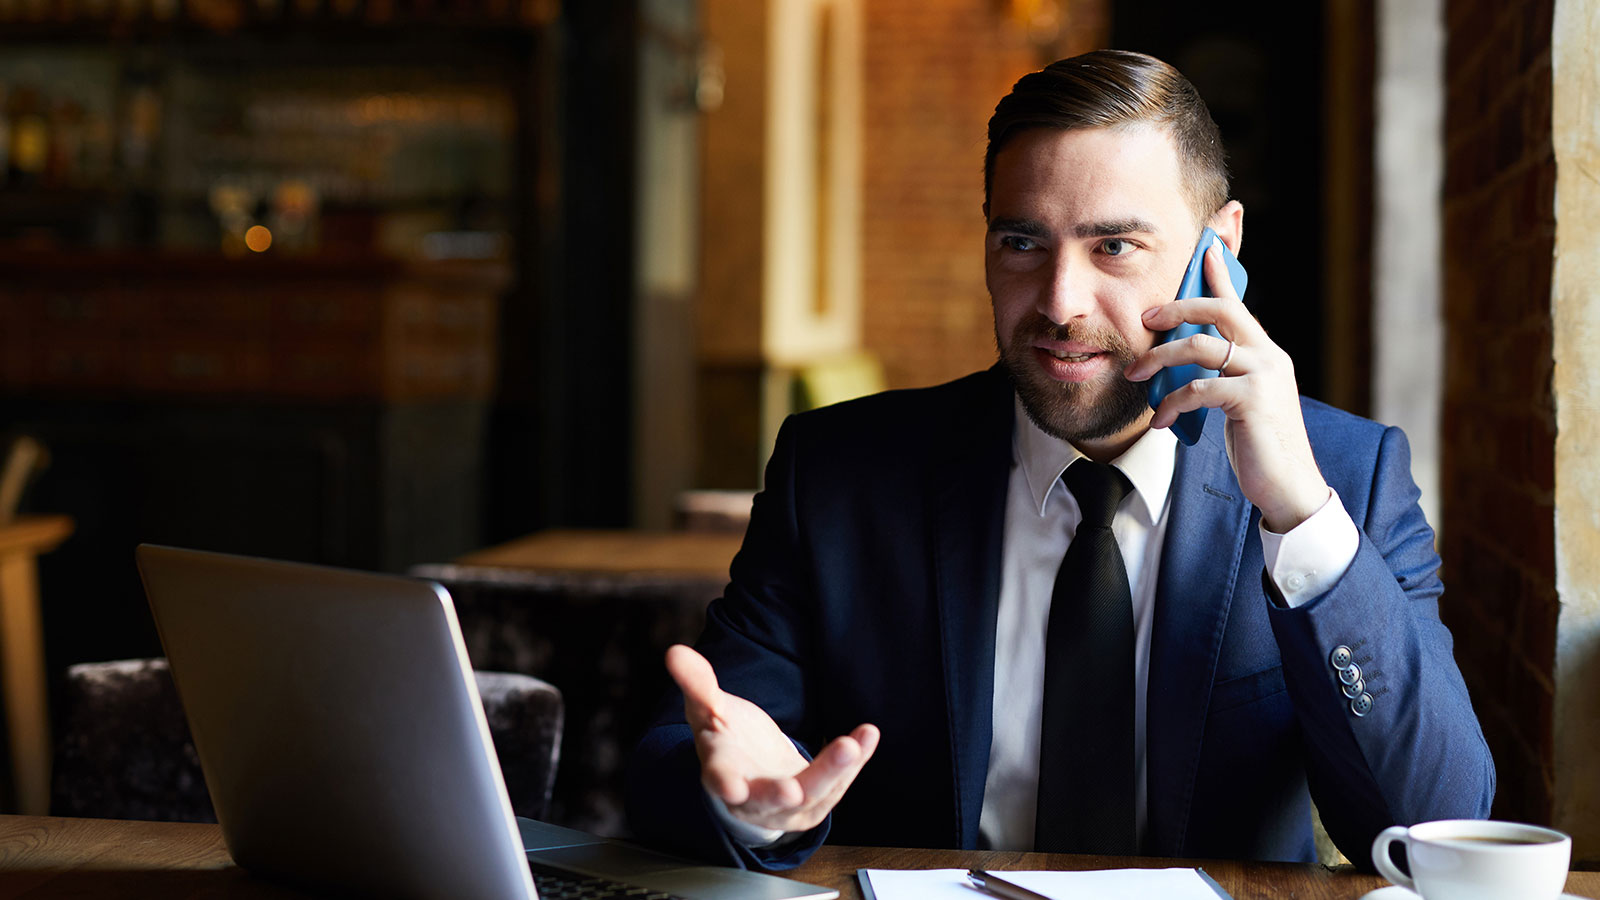 Phone Systems for Legal Services